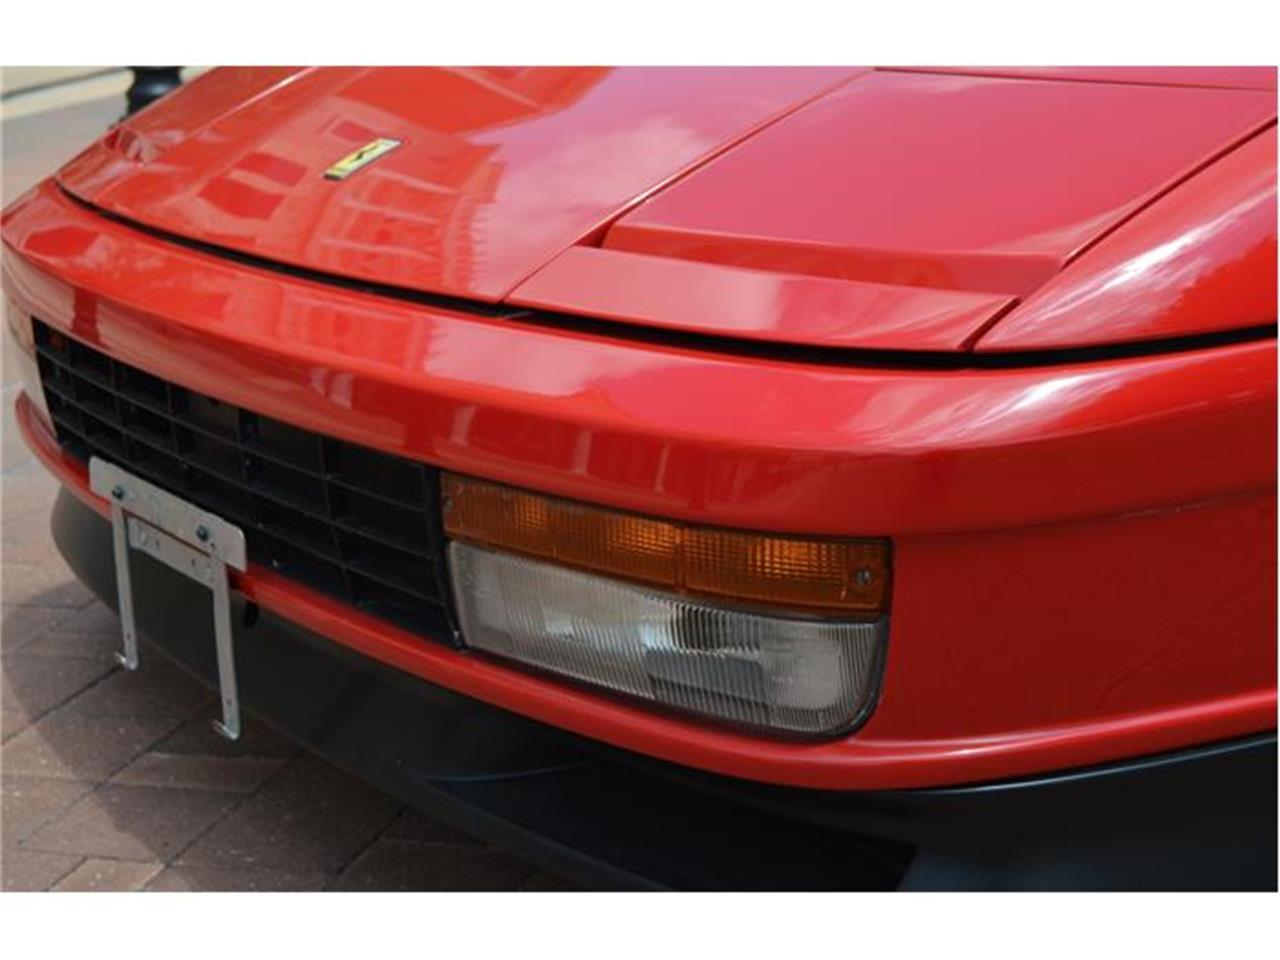 Large Picture of '90 Testarossa located in San Antonio Texas Auction Vehicle Offered by LT Car Holding - GMC4